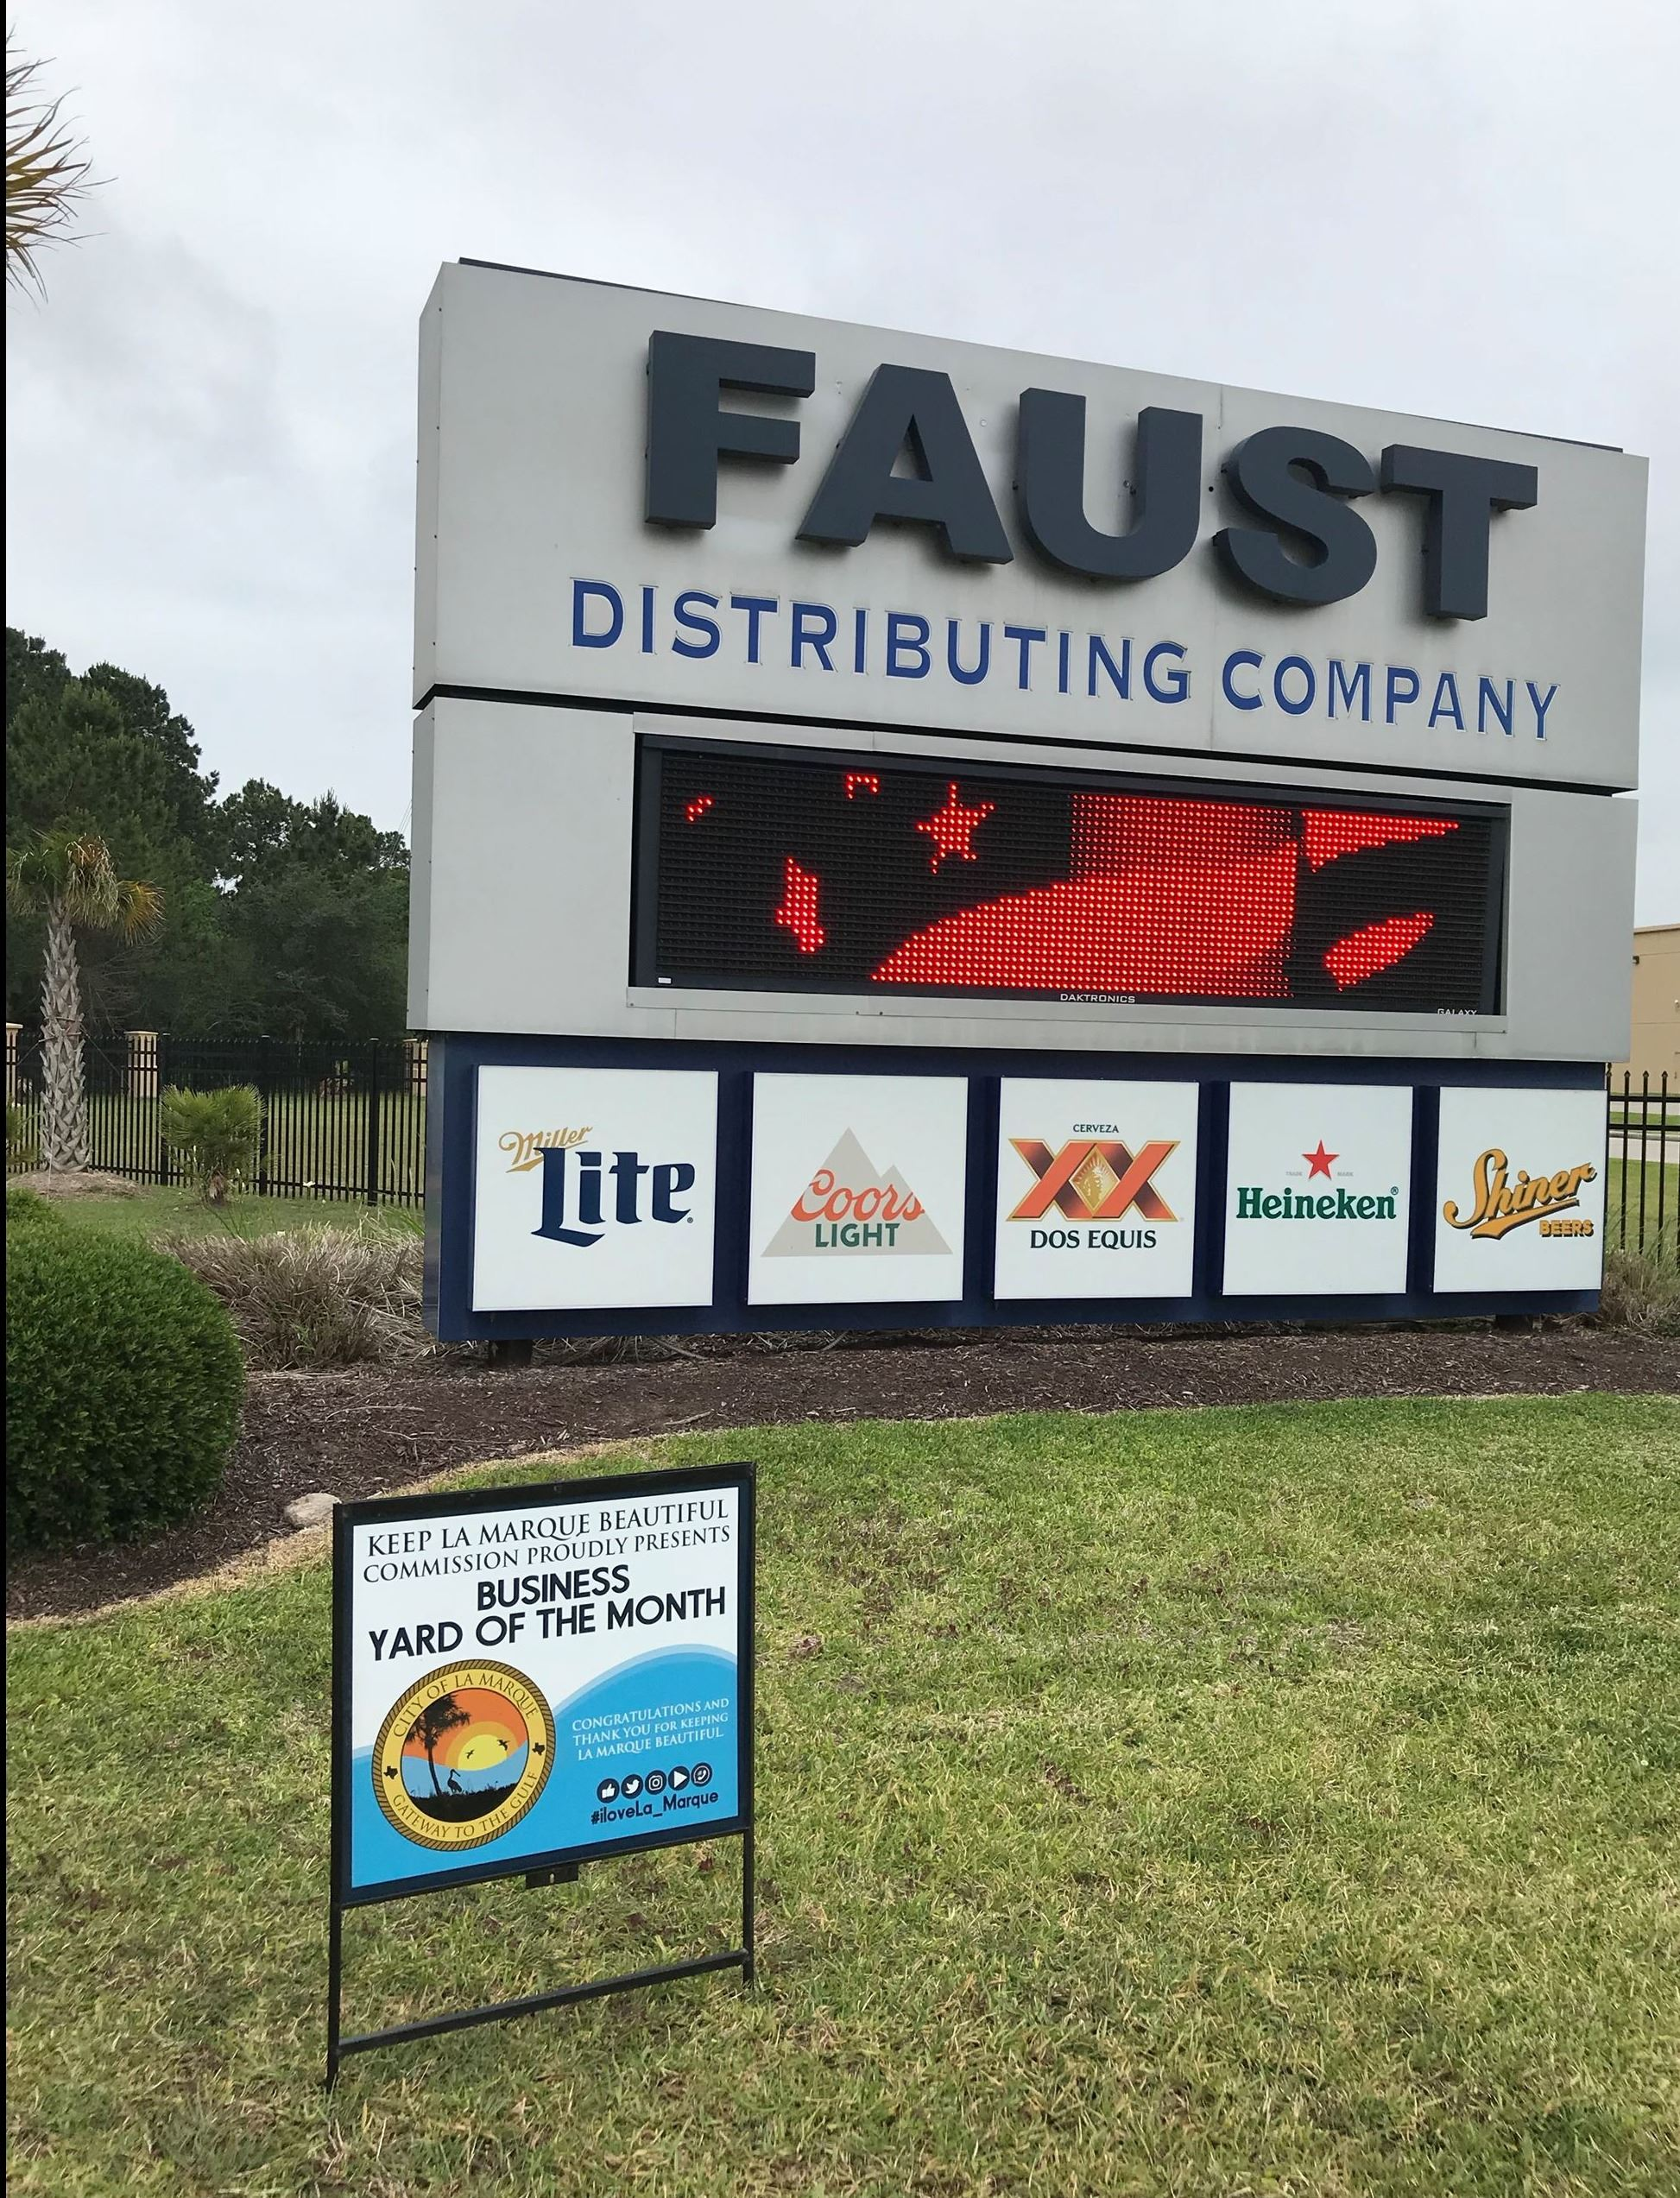 Faust Distributing Company